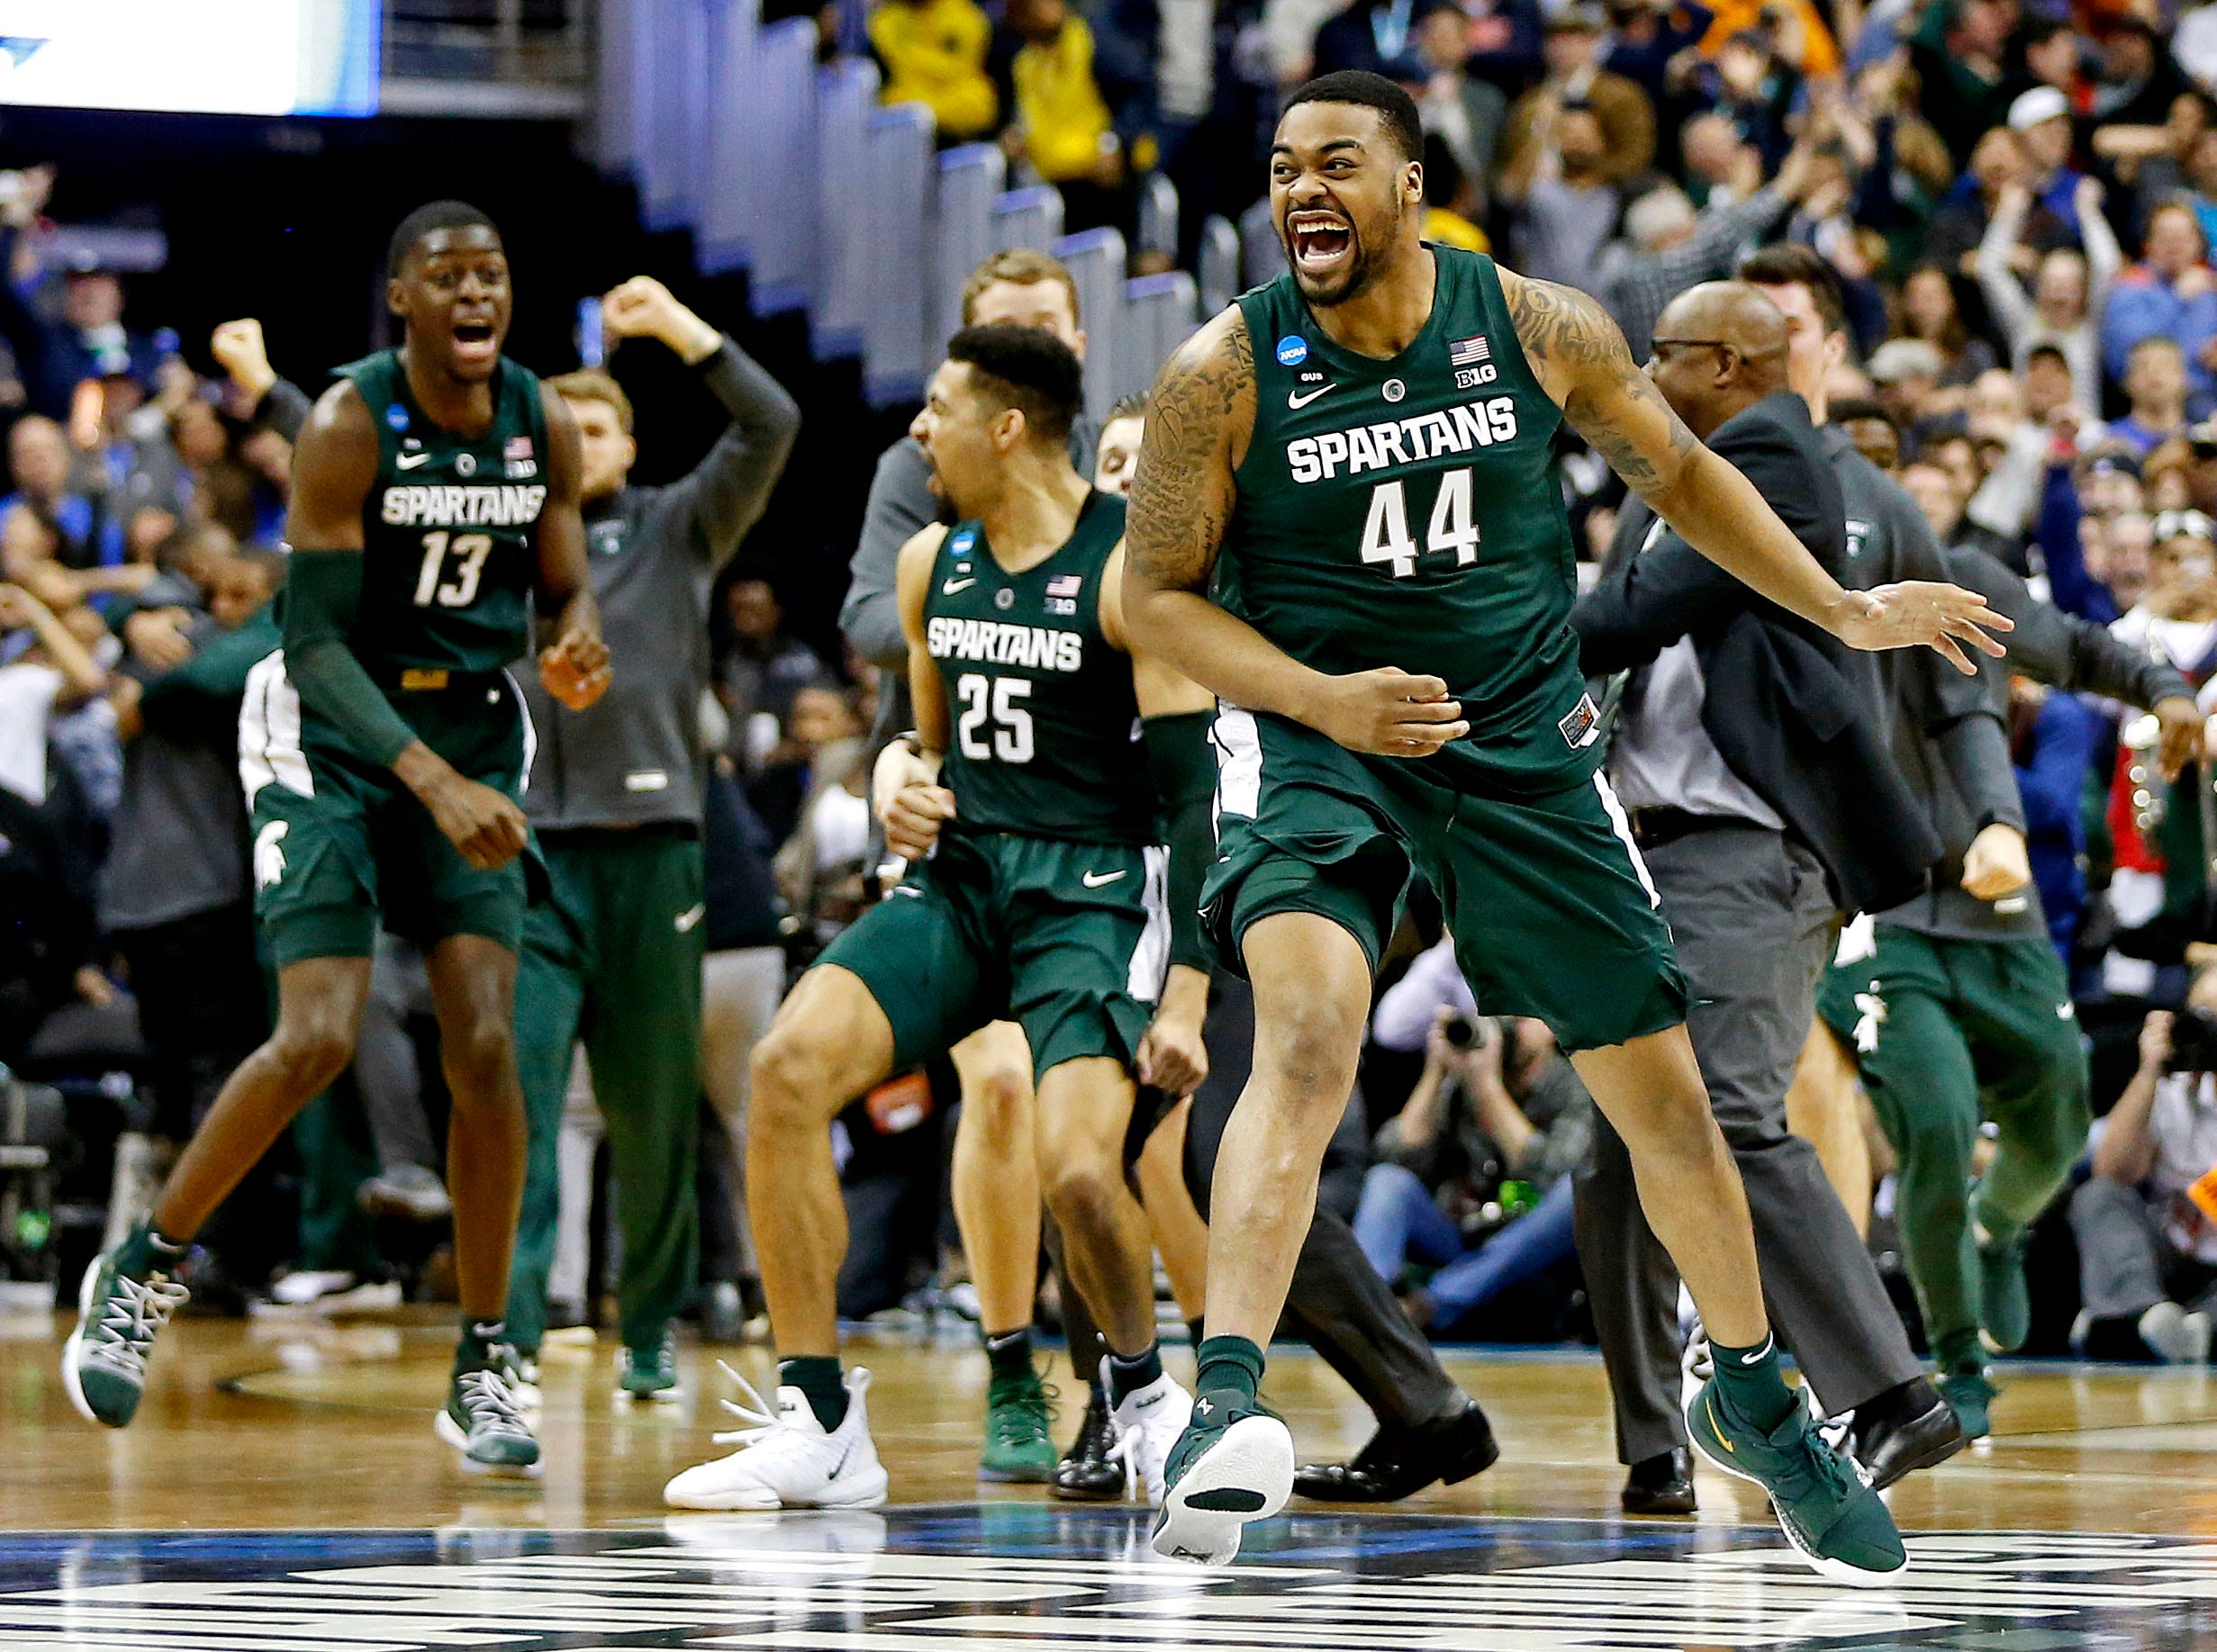 Mar 31, 2019; Washington, DC, USA; Michigan State Spartans forward Nick Ward (44) celebrates after beating the Duke Blue Devils in the championship game of the east regional of the 2019 NCAA Tournament at Capital One Arena. Mandatory Credit: Amber Searls-USA TODAY Sports